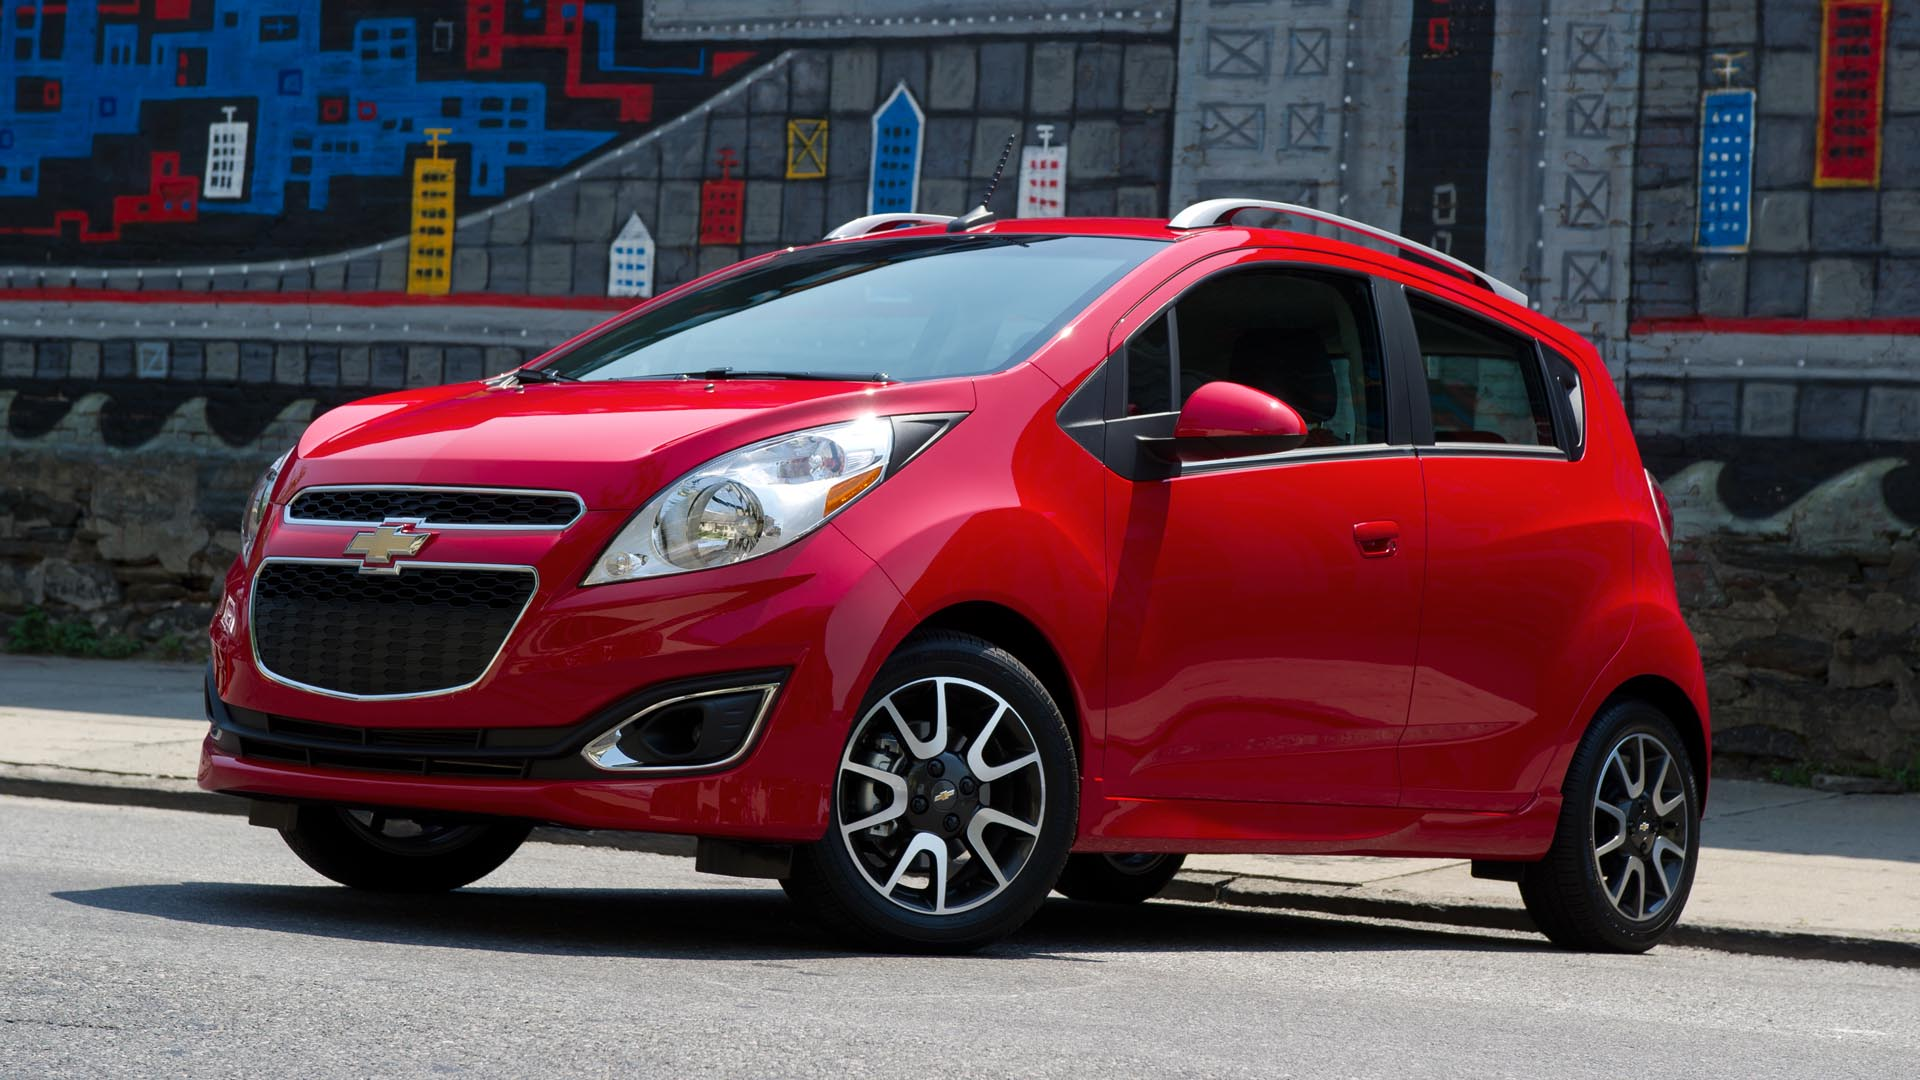 New Chevrolet Spark Makes an Electric Debut